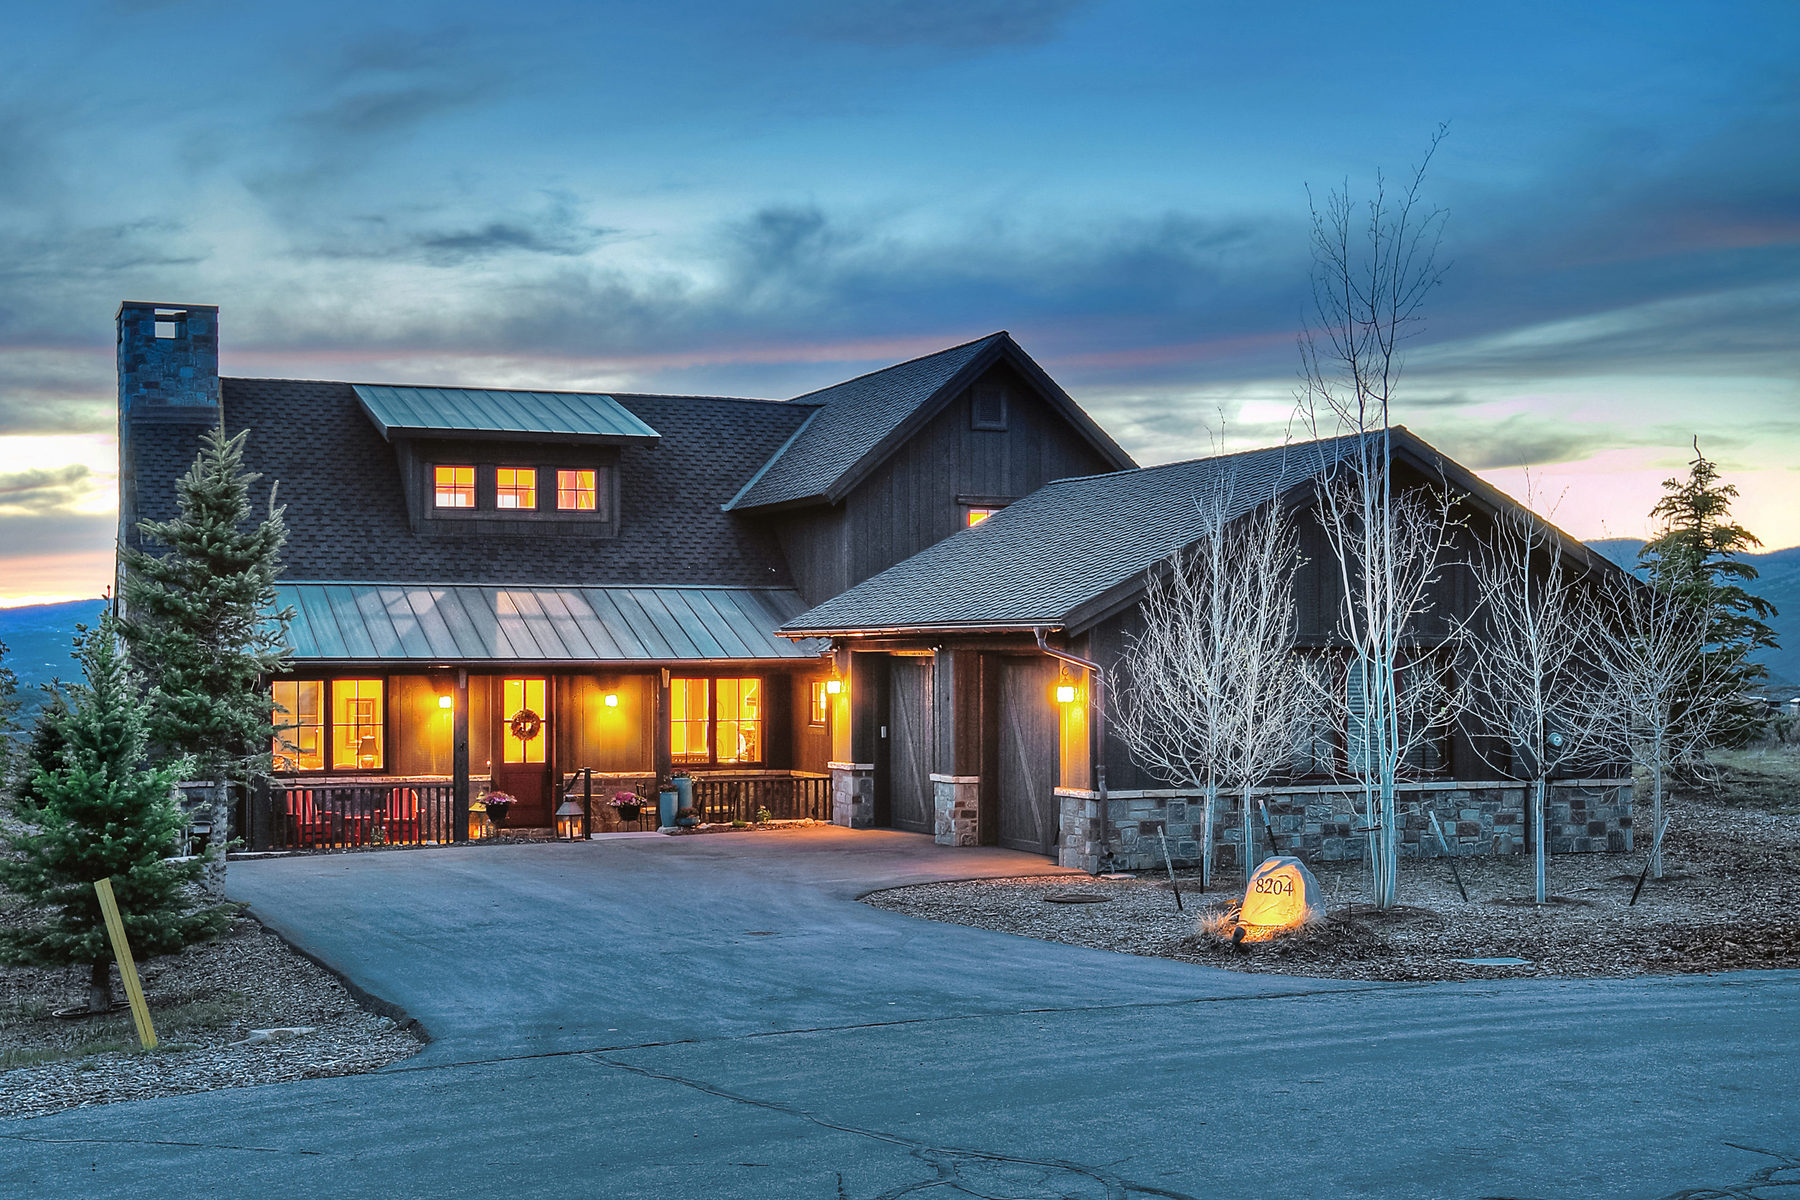 Single Family Home for Sale at New Upgraded Trapper Cabin with Views 8204 Western Sky Lot 24 Park City, Utah 84098 United States